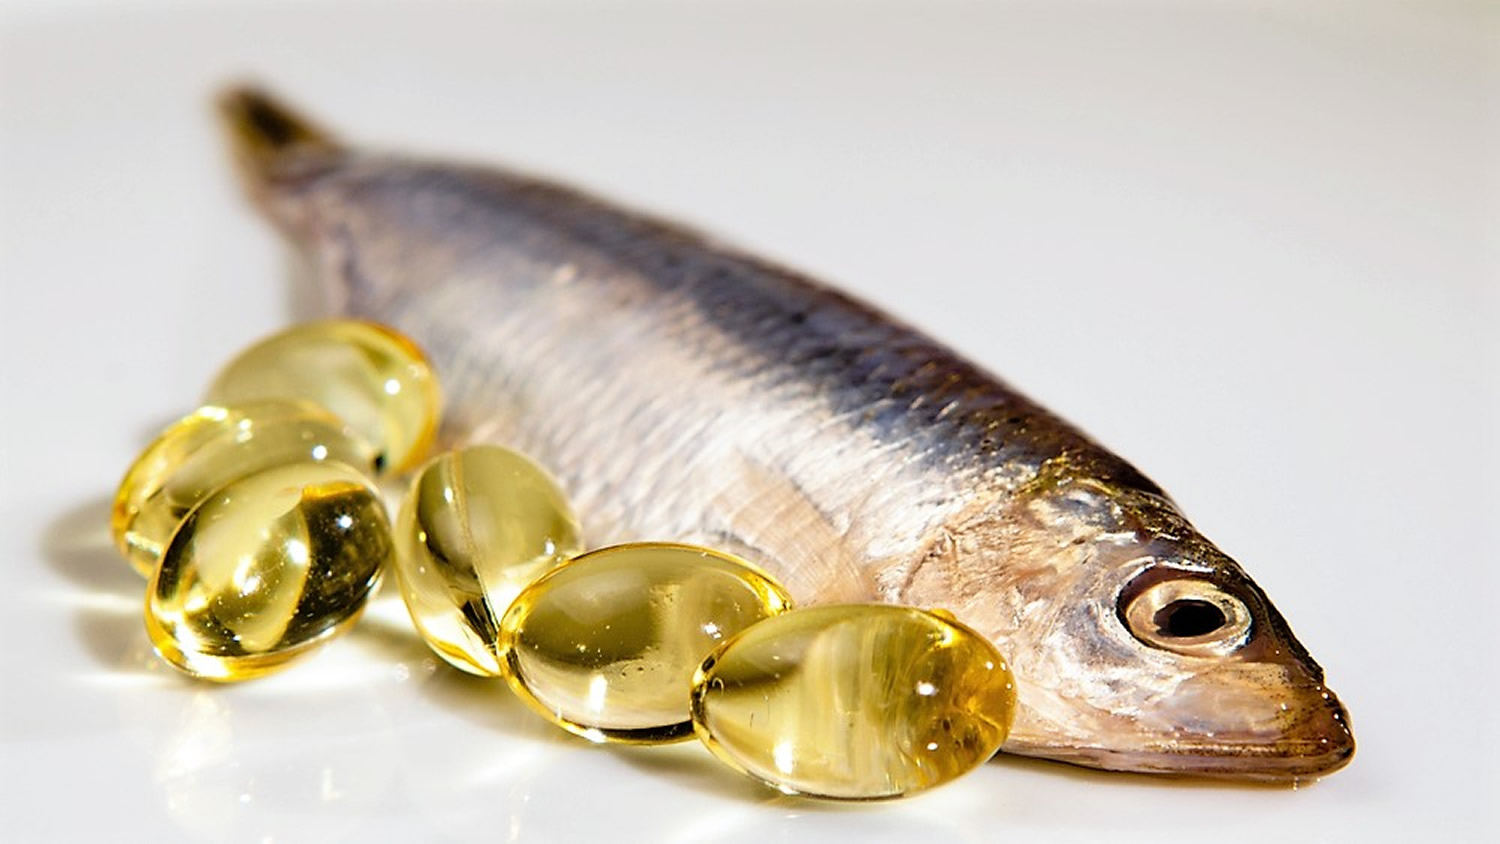 Fish Oil Omega-3 Benefits - Is Fish Oil better than Krill Oil?